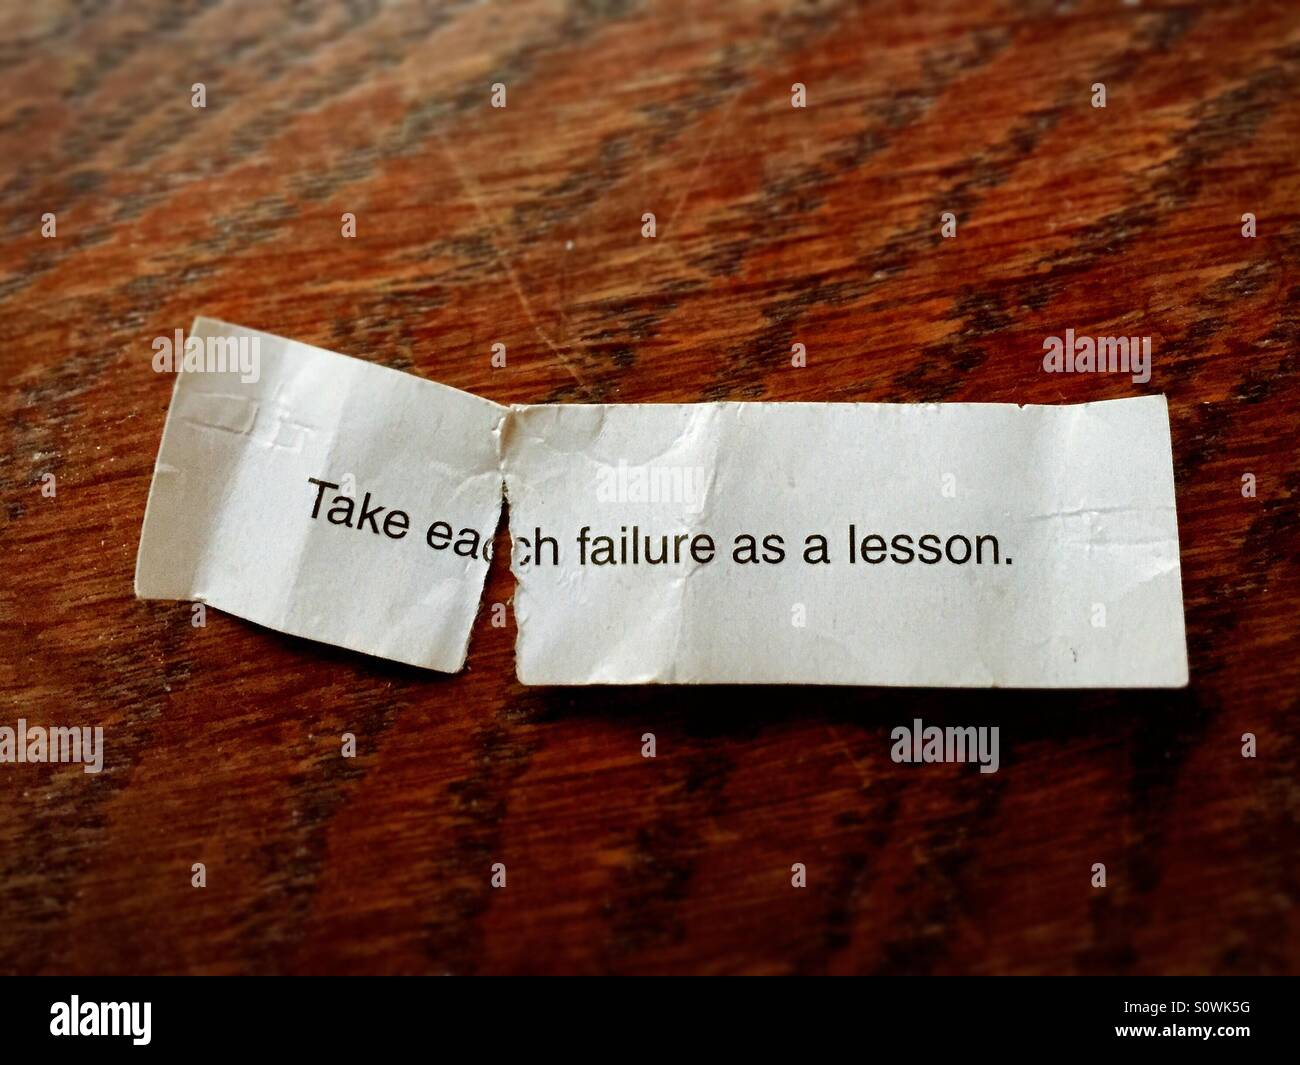 Take each failure as a lesson. Torn fortune cookie wisdom. - Stock Image